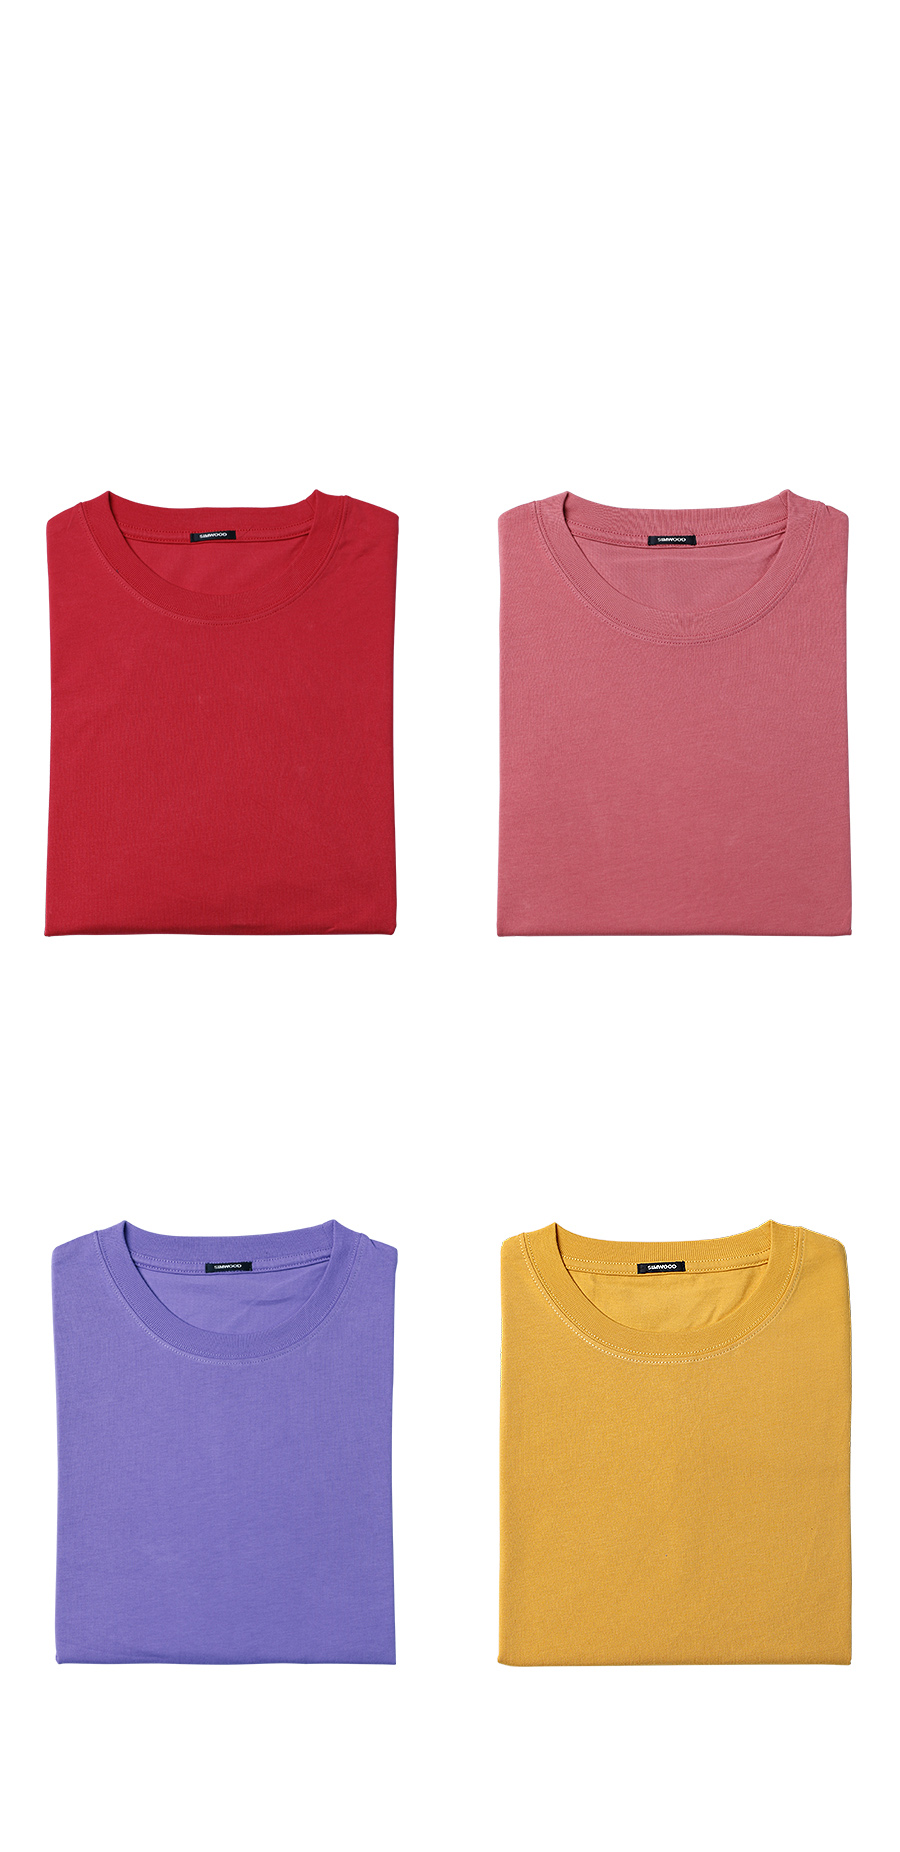 SIMWOOD 19 Summer New T-Shirt Men 100% Cotton Solid Color Casual t shirt Basics O-neck High Quality Plus Size Male Tee 190004 28